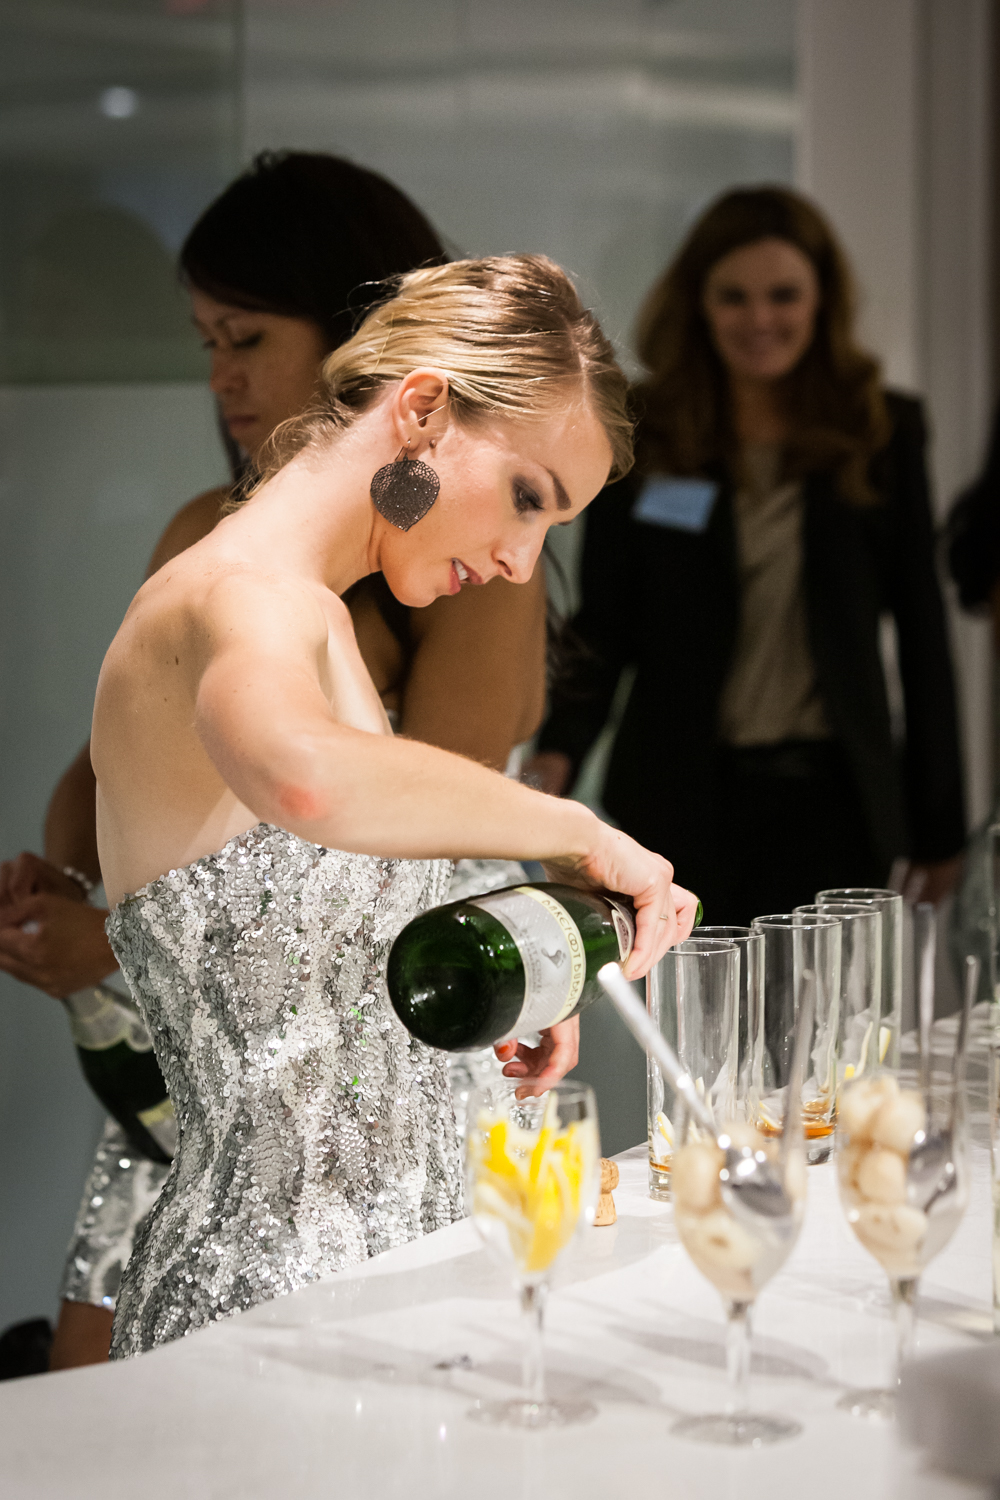 Woman wearing silver dress pouring champagne into glasses